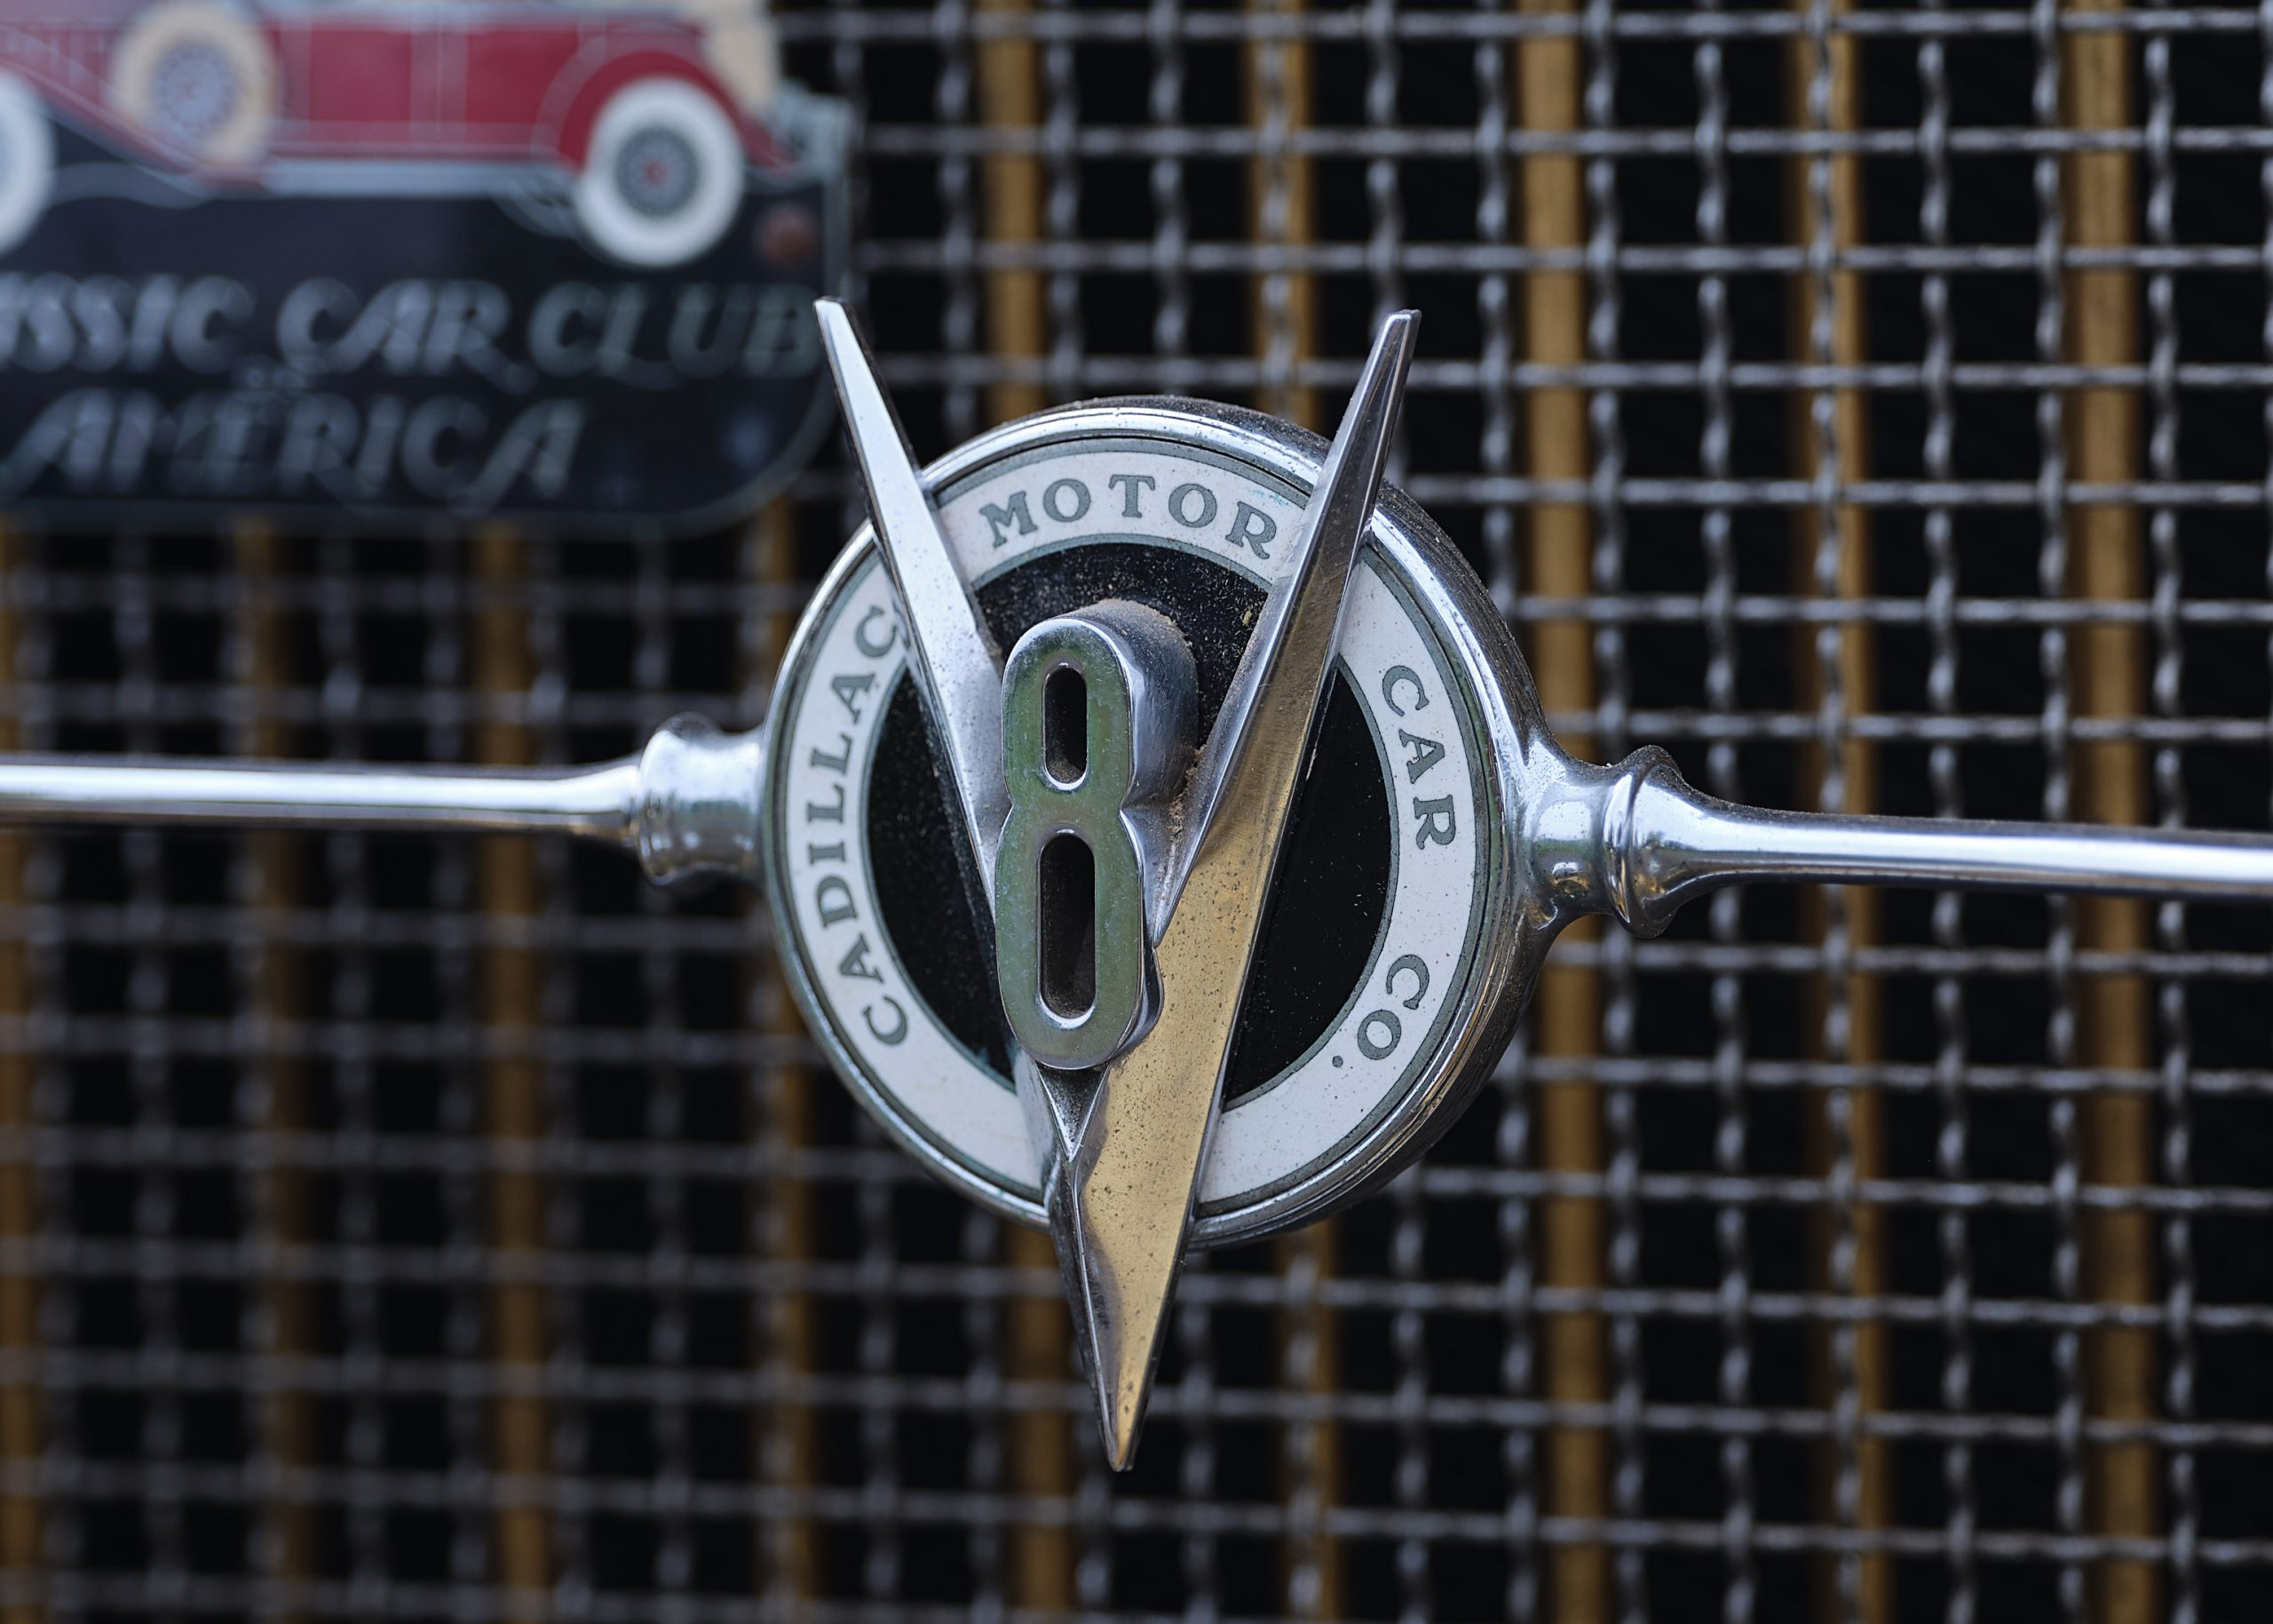 1931 Cadillac V-8 Convertible Coupe front grille emblem badge